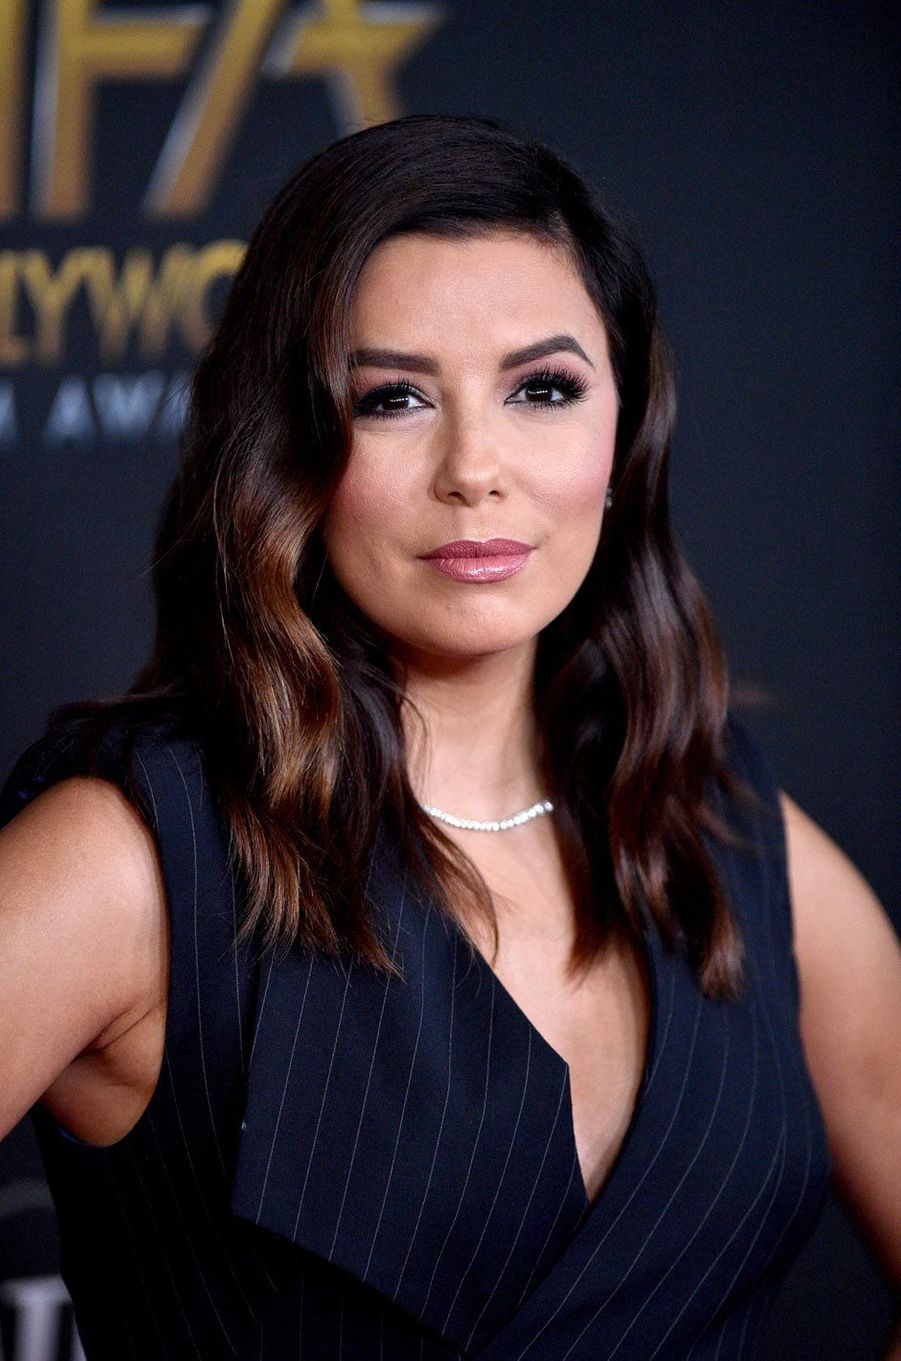 Eva Longoria à la cérémonie des Hollywood Film Awards à Beverly Hills, le 5 novembre 2017.